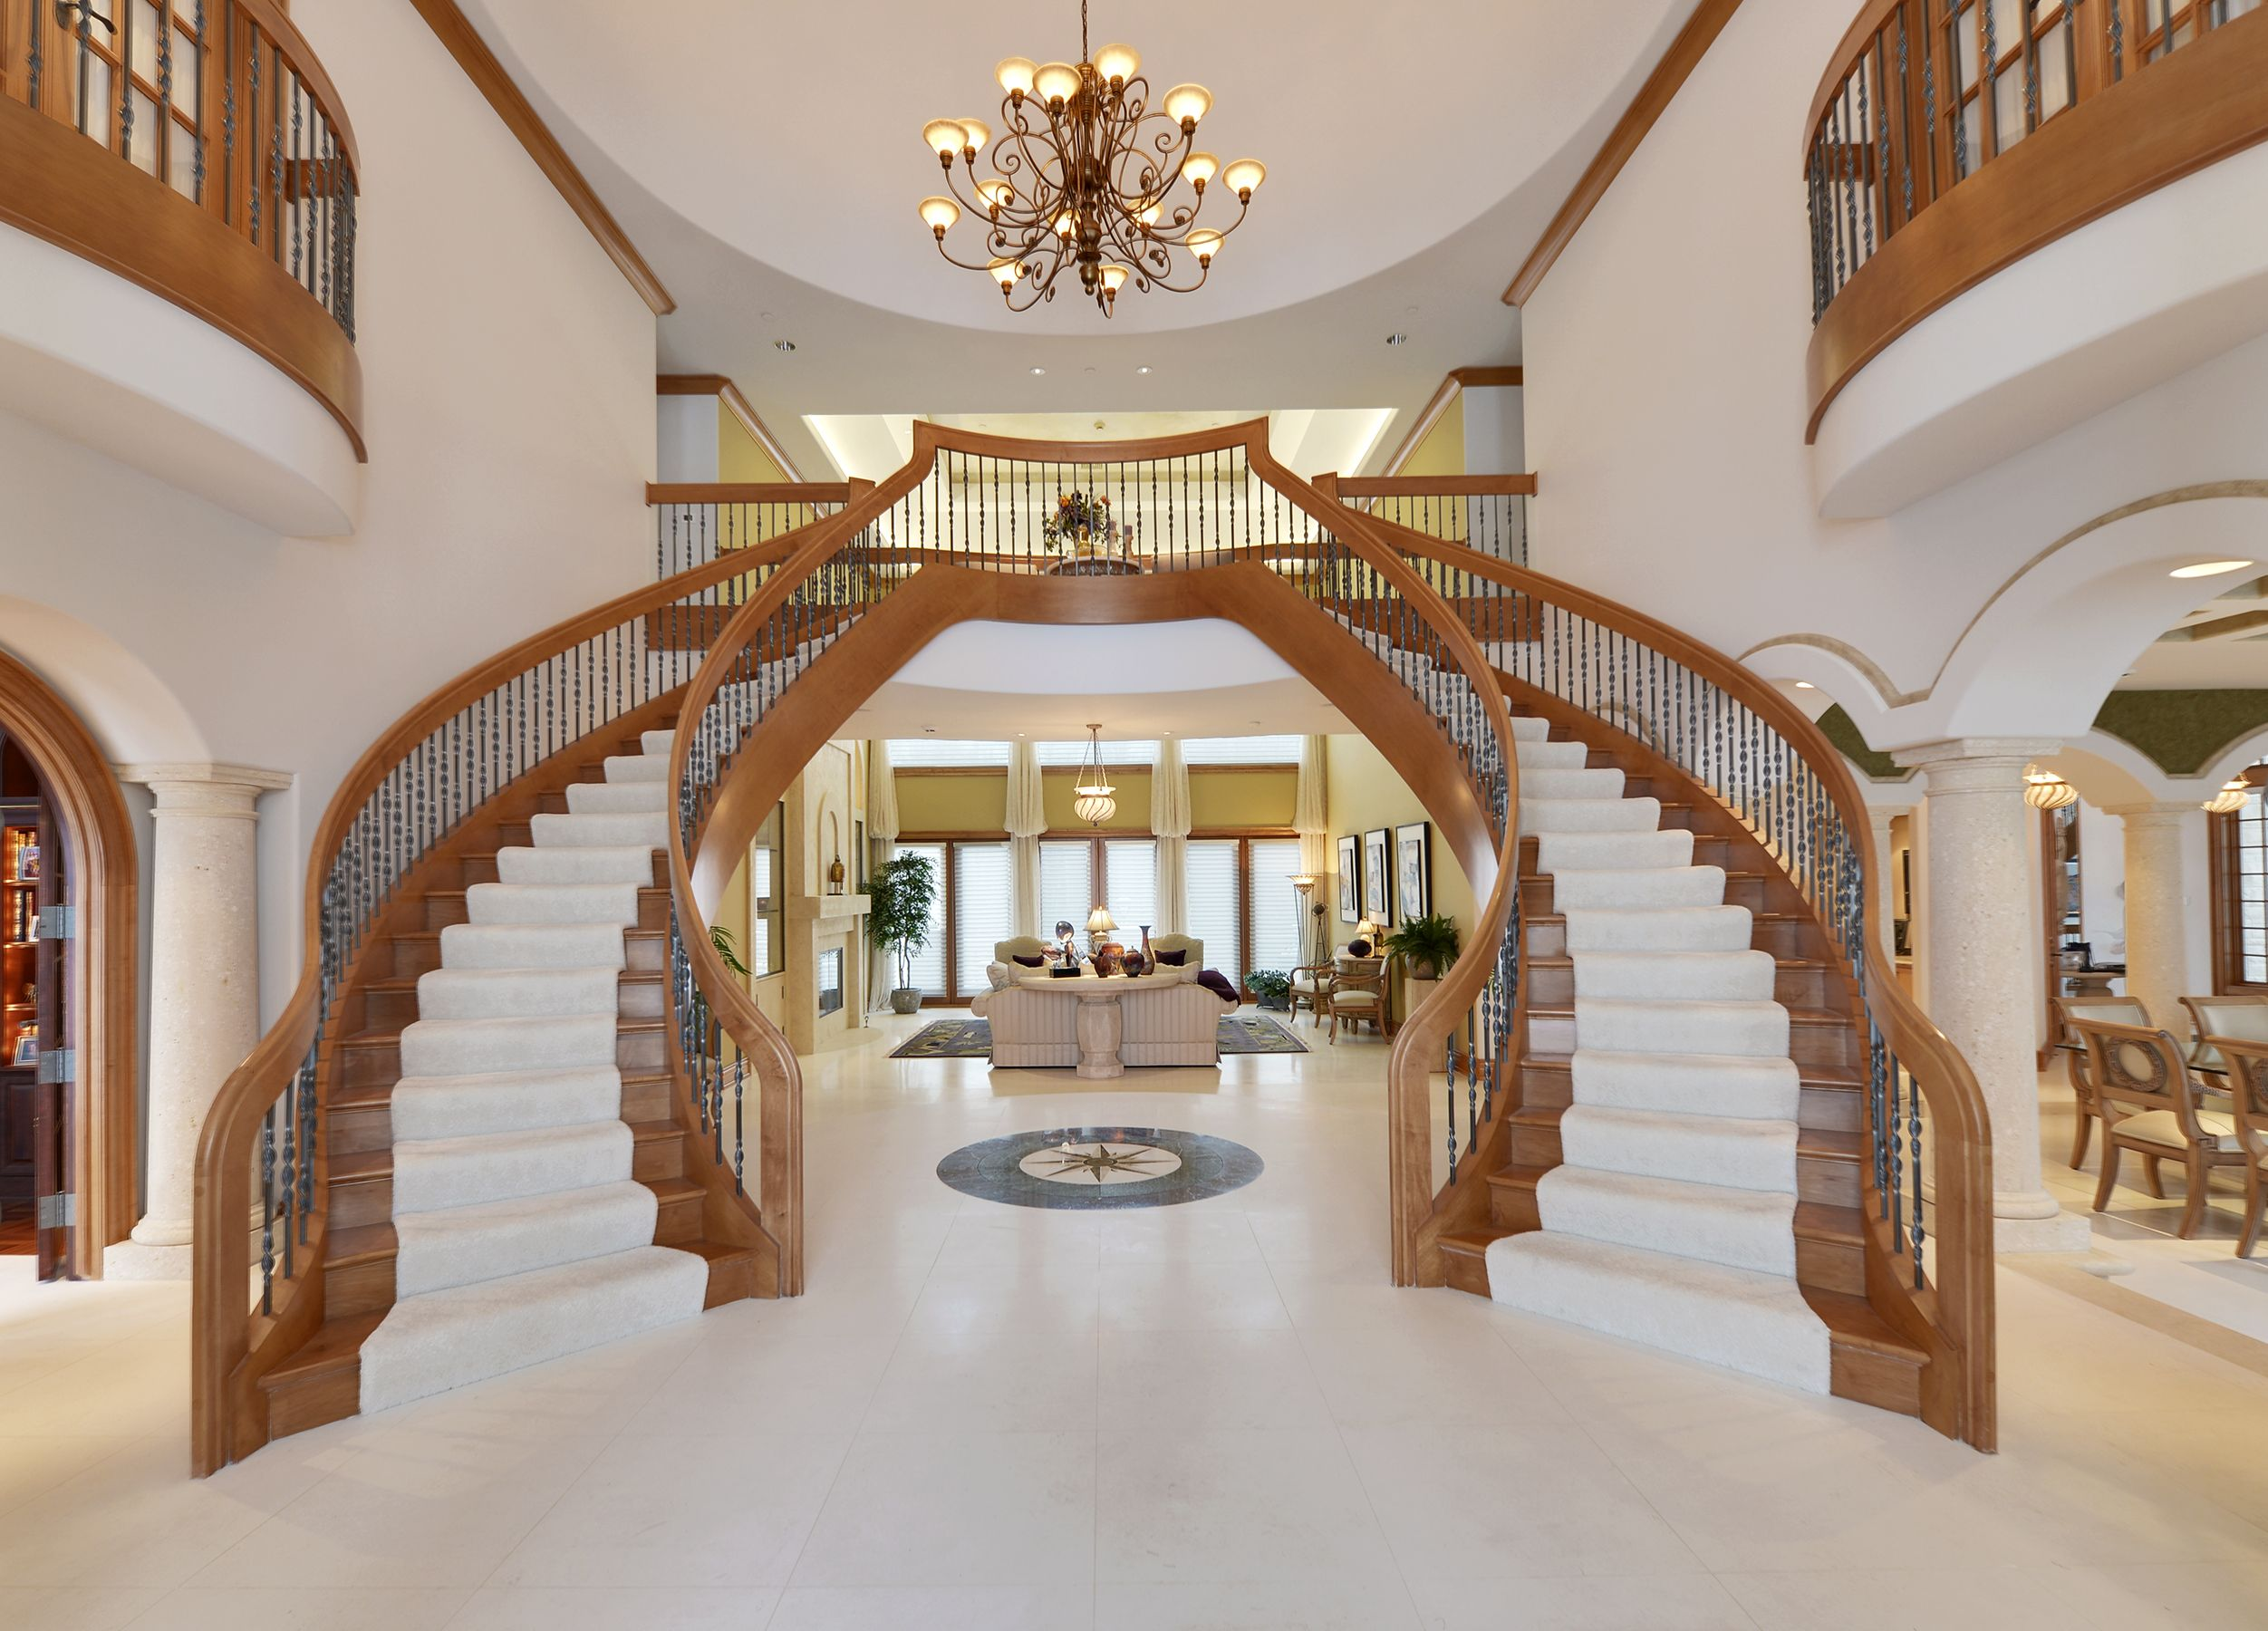 Dual Staircase in Grand Foyer | Luxury Homes | Pinterest | Foyers ...